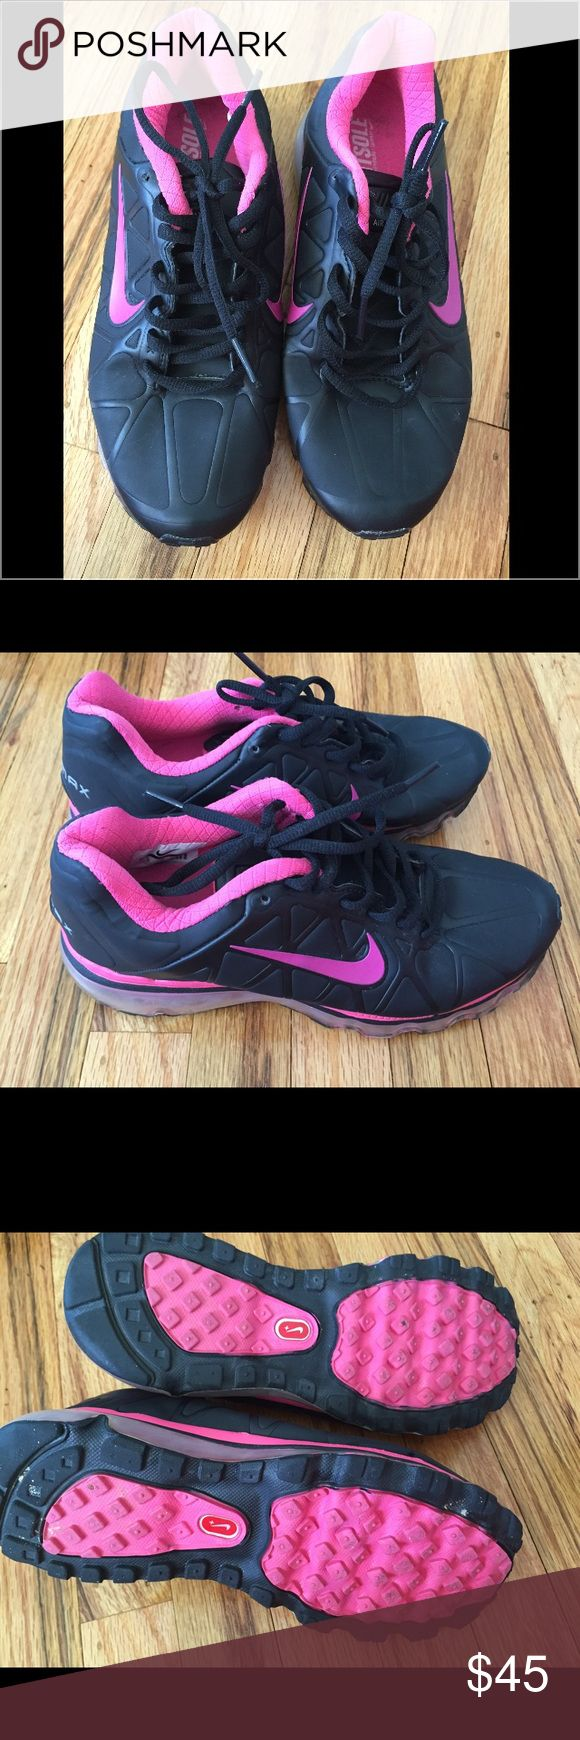 Nike Air Max Black and Pink Sneakers. Like New! Nike Air Max Black and Pink Sneakers. Like New! Only worn 2-3 times. Size 6.5. Nike Shoes Sneakers